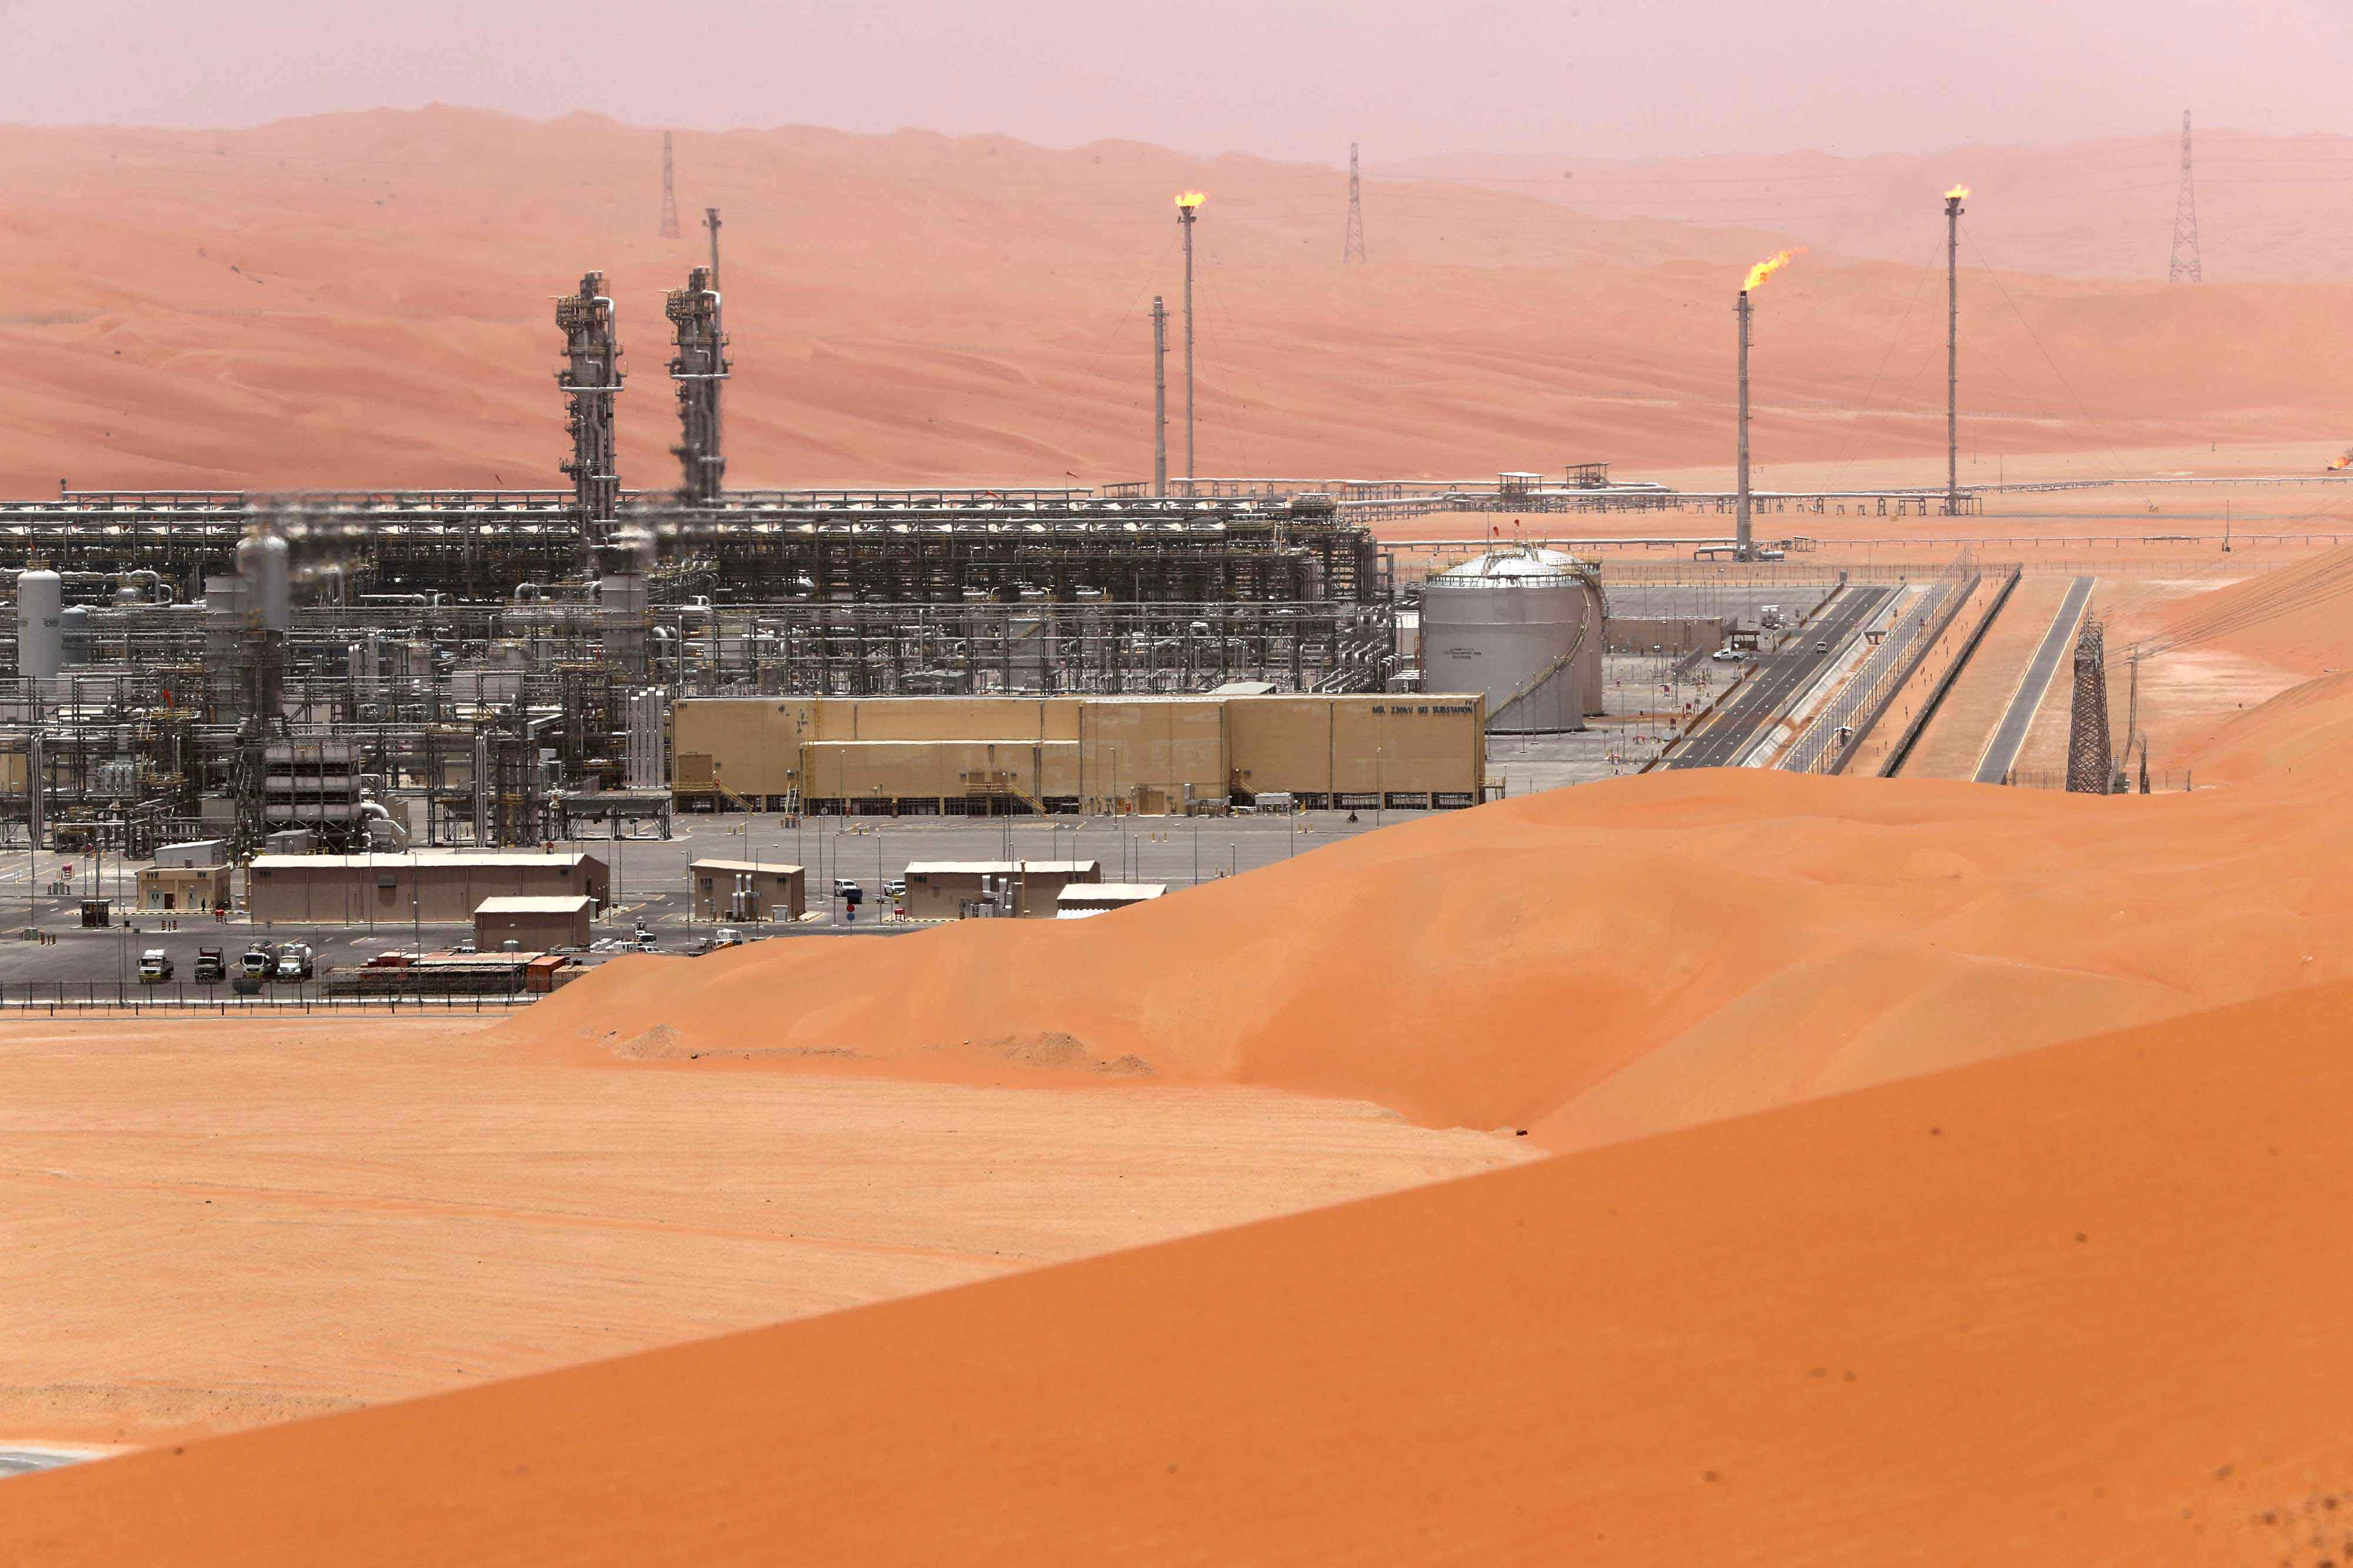 A general view of the Natural Gas Liquids (NGL) facility in Saudi Aramco's Shaybah oilfield at the Empty Quarter. (Reuters)